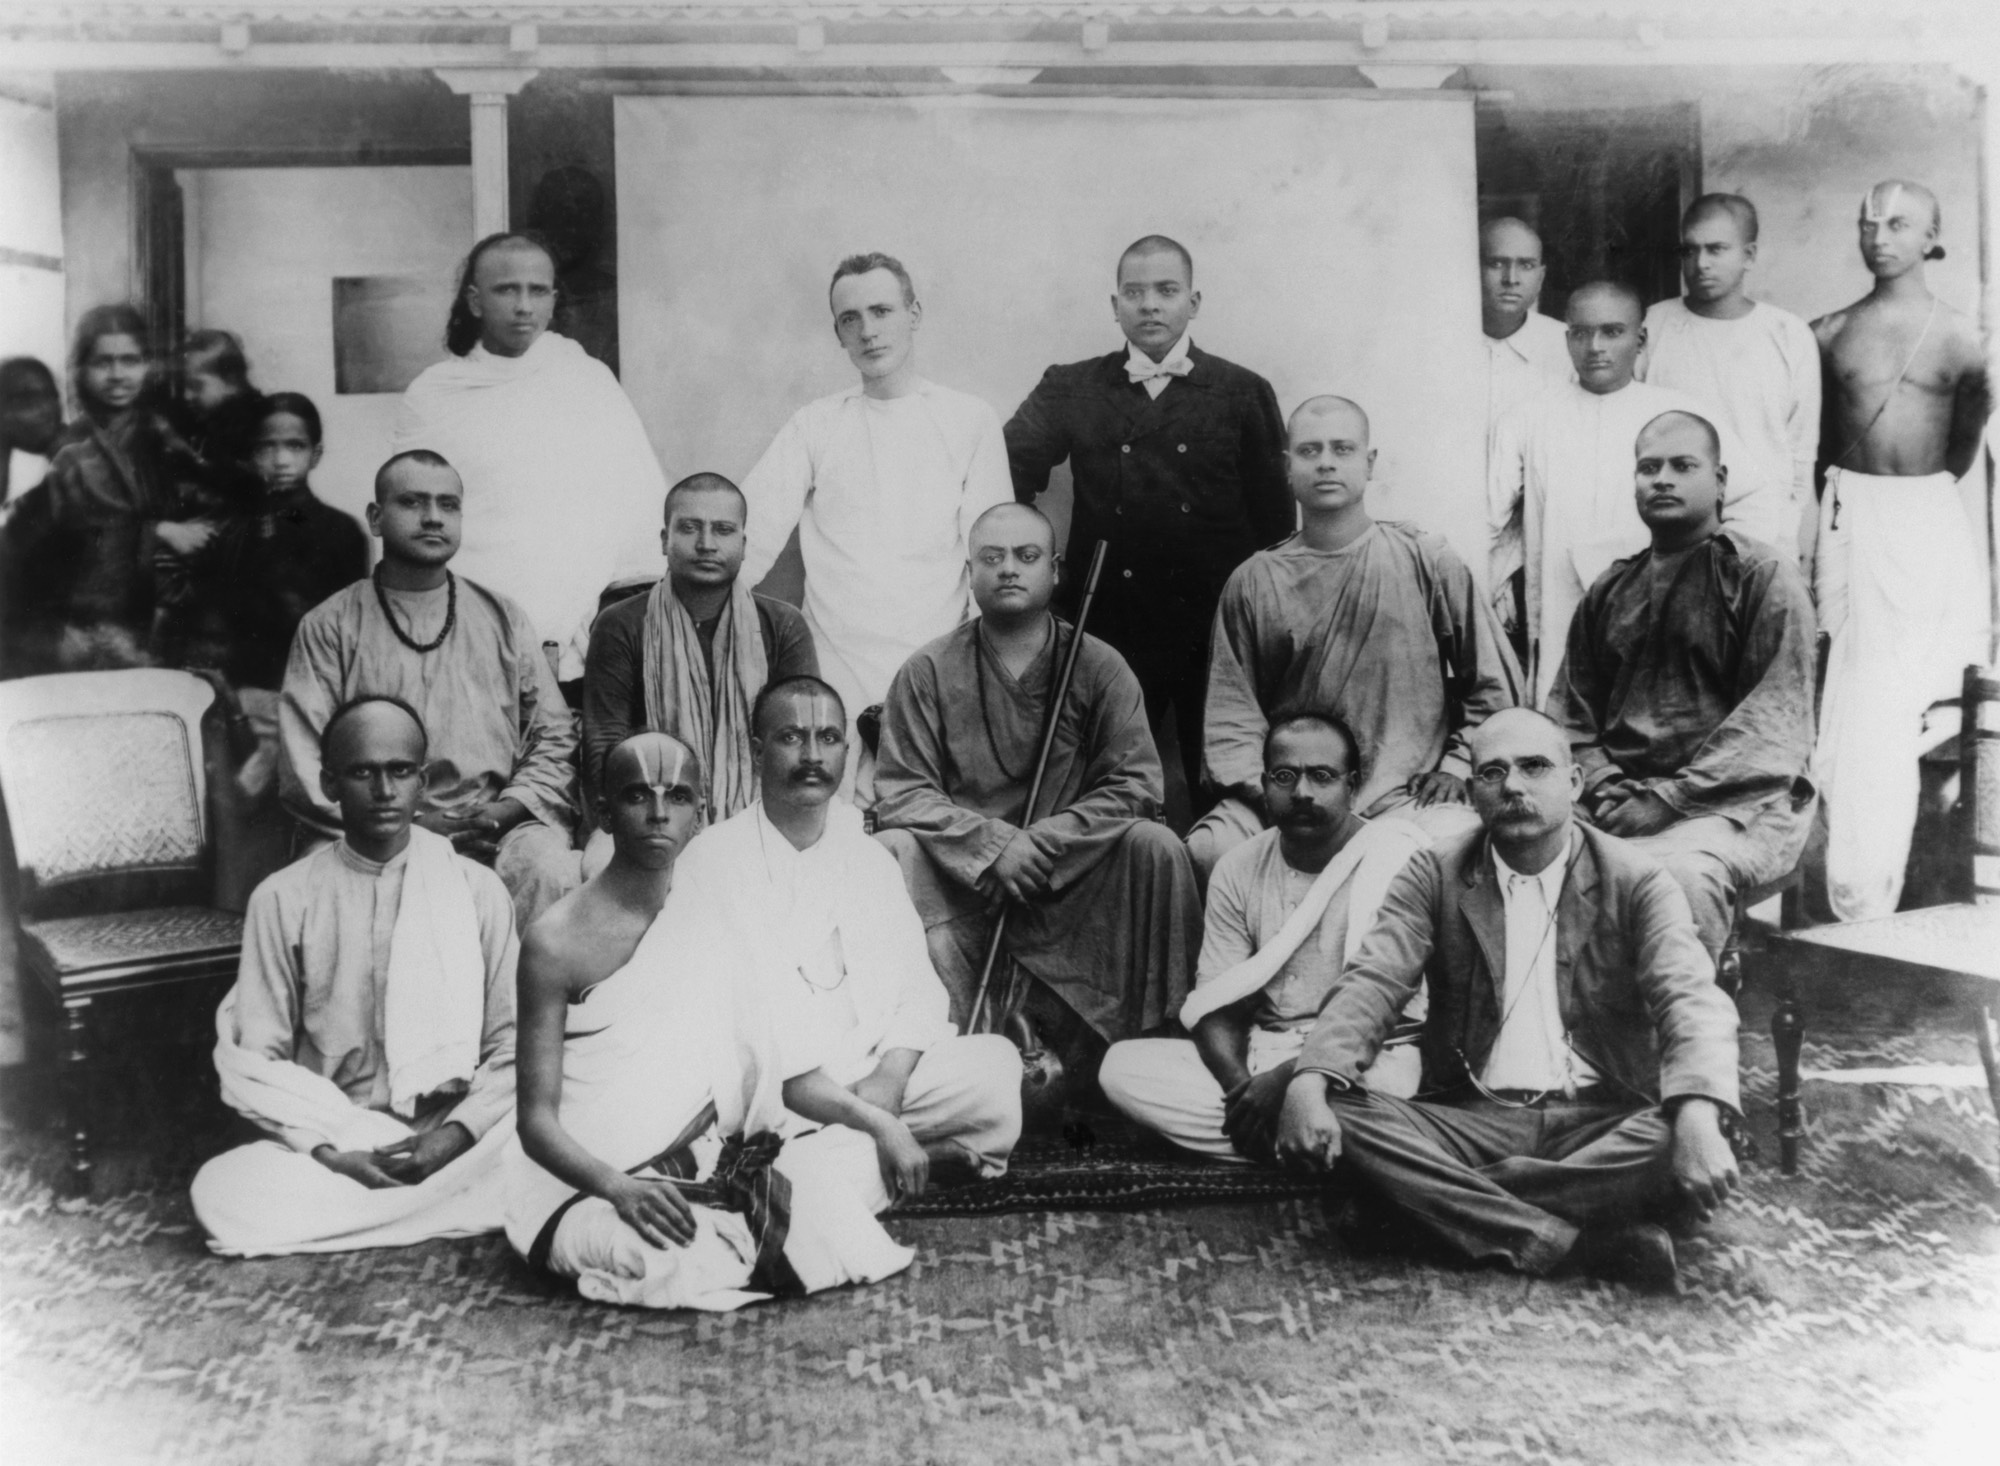 (#57) Chennai, February 1897.  Sitting on chair  ( from  L): Tarapada (a monk from another Order), Swami Shivananda, Swamiji, Swami Niranjanananda, Swami Sadananda.  Standing  ( from  L): Alasinga Perumal, J. J. Goodwin, M. N. Banerjee, and other devotees.  Sitting  ( from  L): (second) Biligiri Iyengar, (fourth) M. C. Nanjunda Rao.